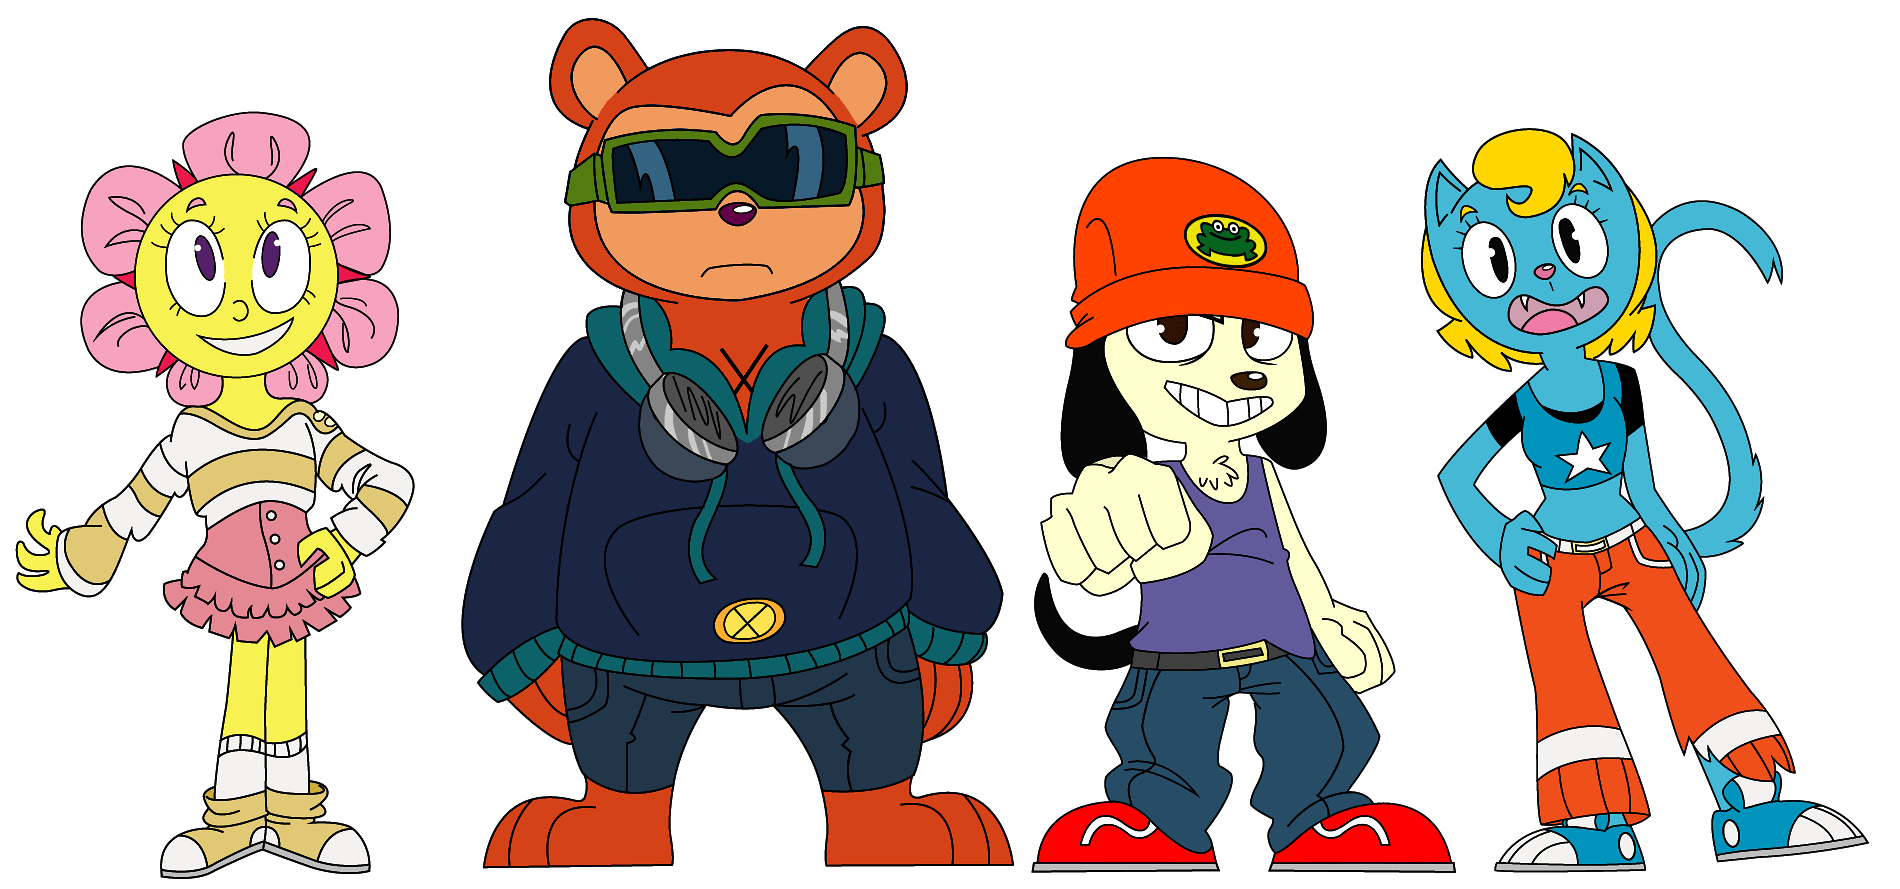 Princess Anime Wallpaper Parappa The Rapper Images Parappa Team Hd Wallpaper And